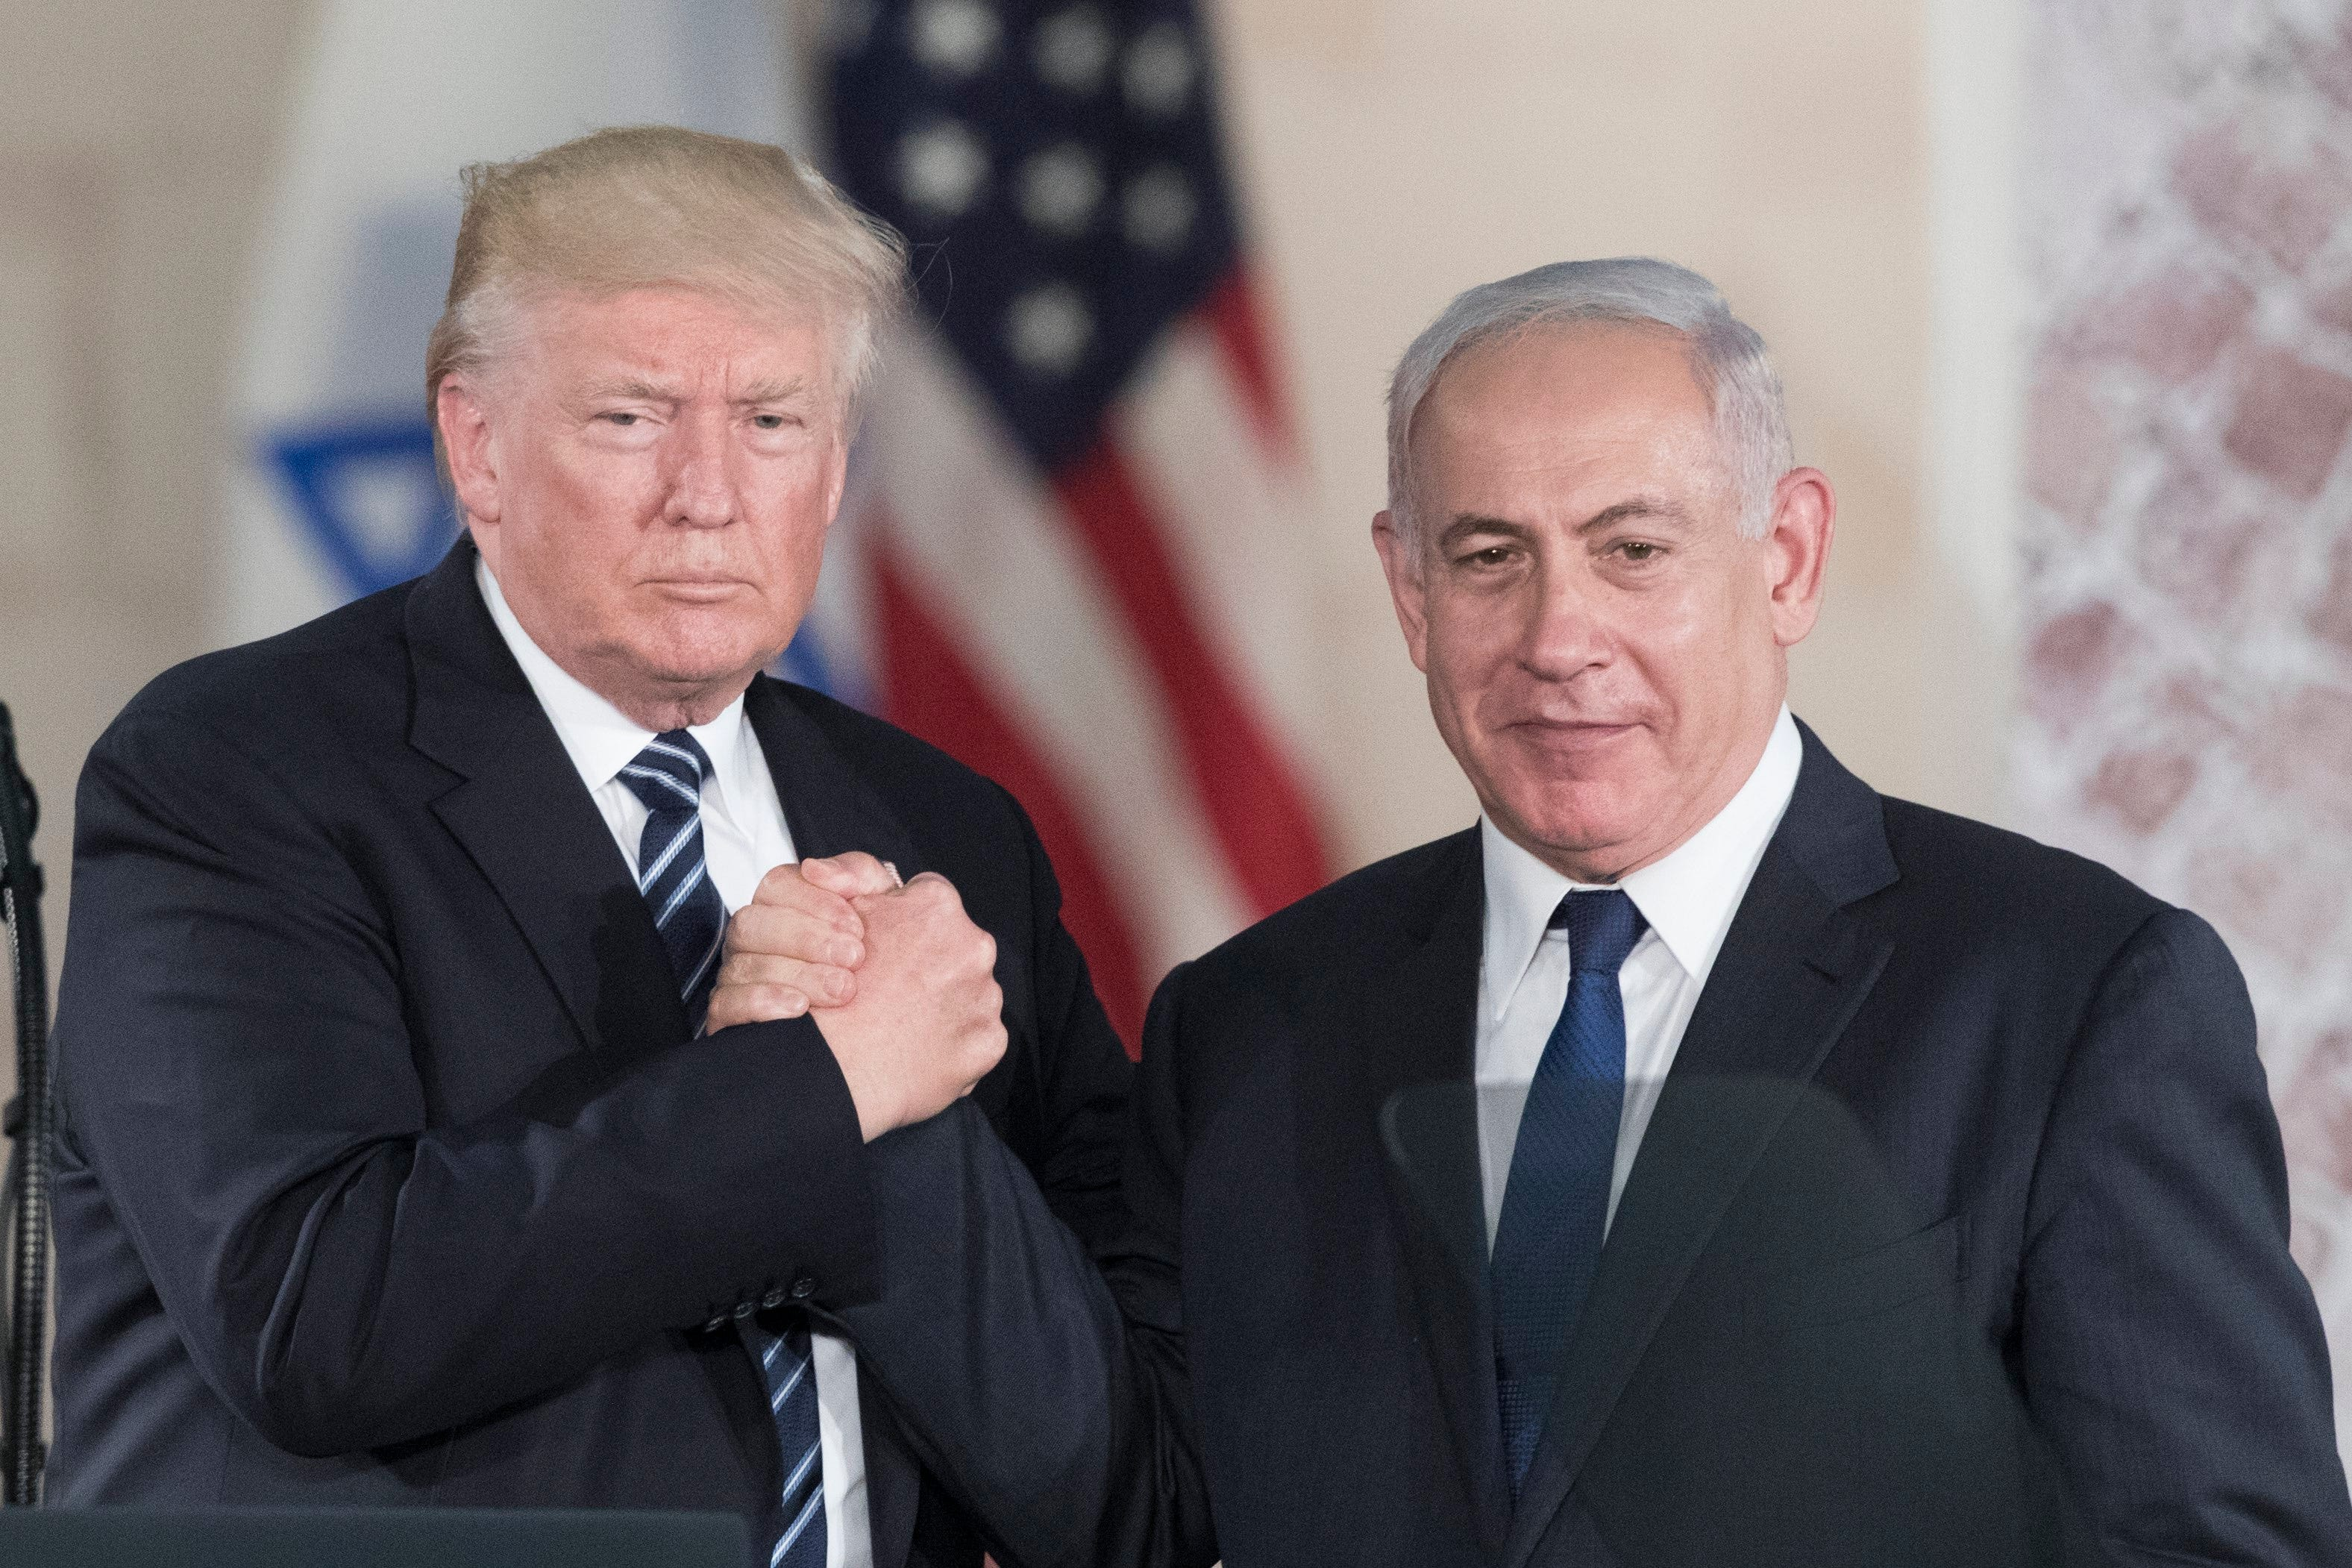 President Trump says U.S. should recognize Israel's sovereignty over disputed Golan Heights